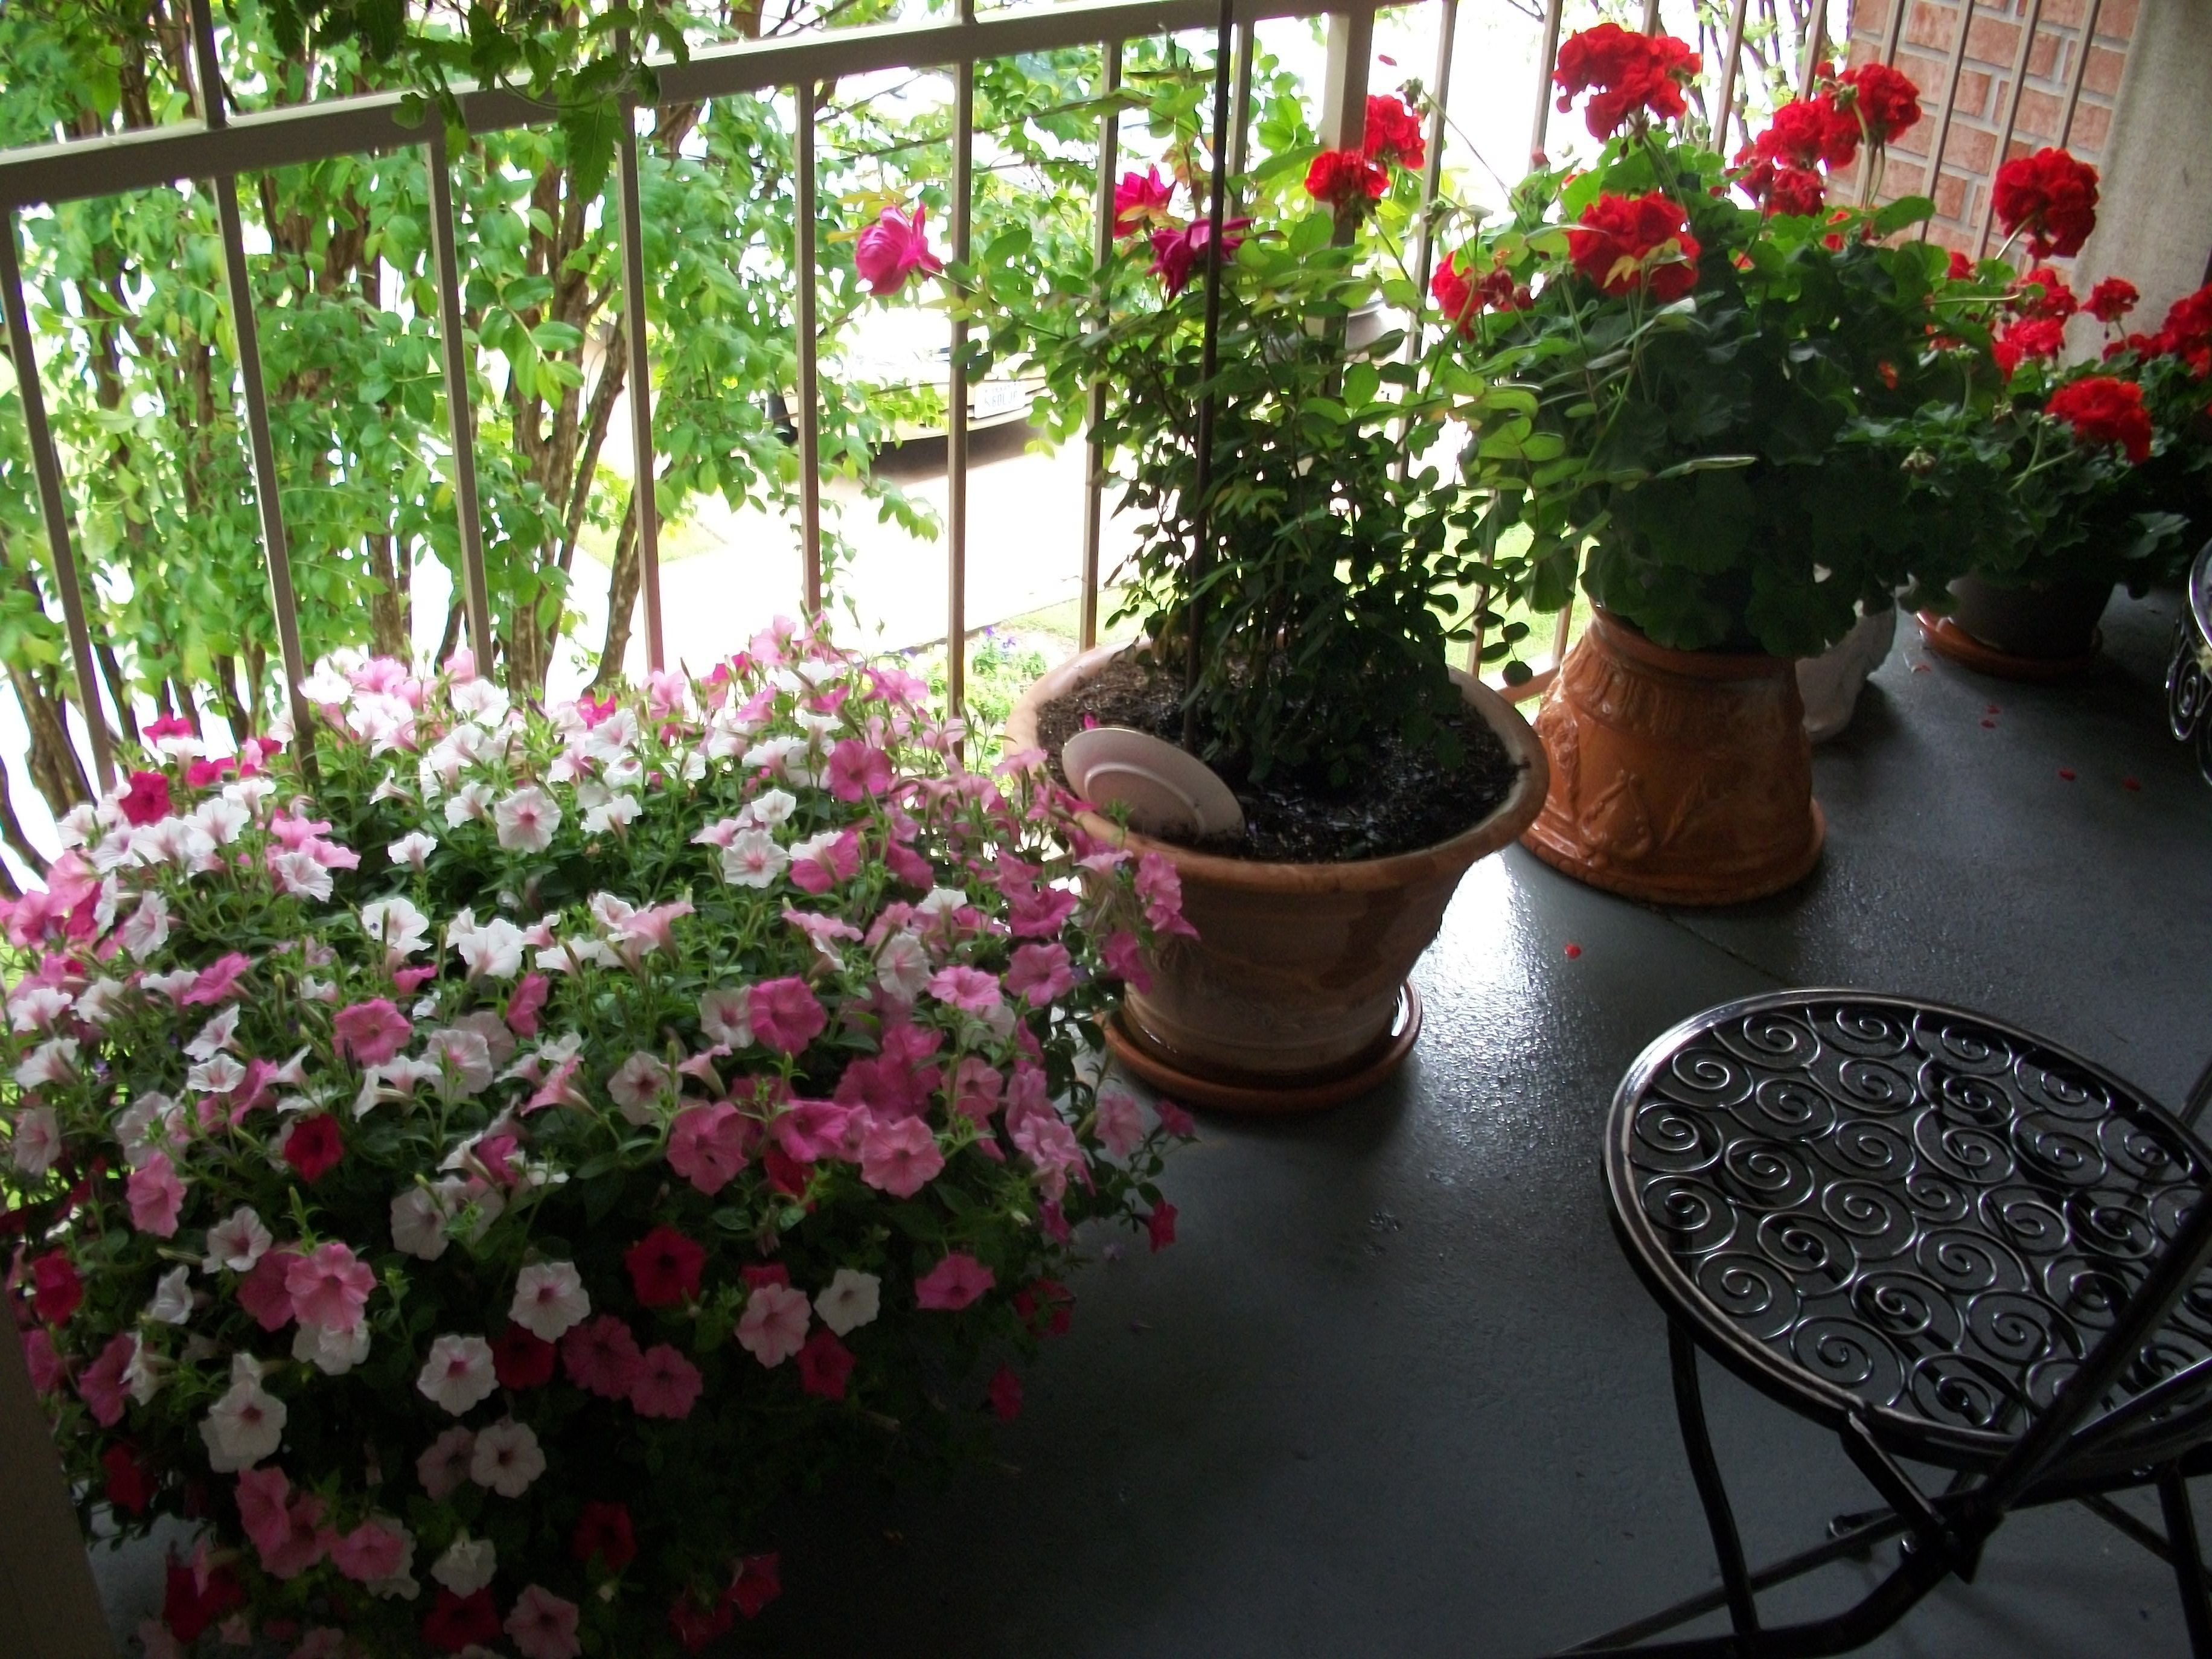 Balcony garden flowers gardens pinterest for Balcony flowers